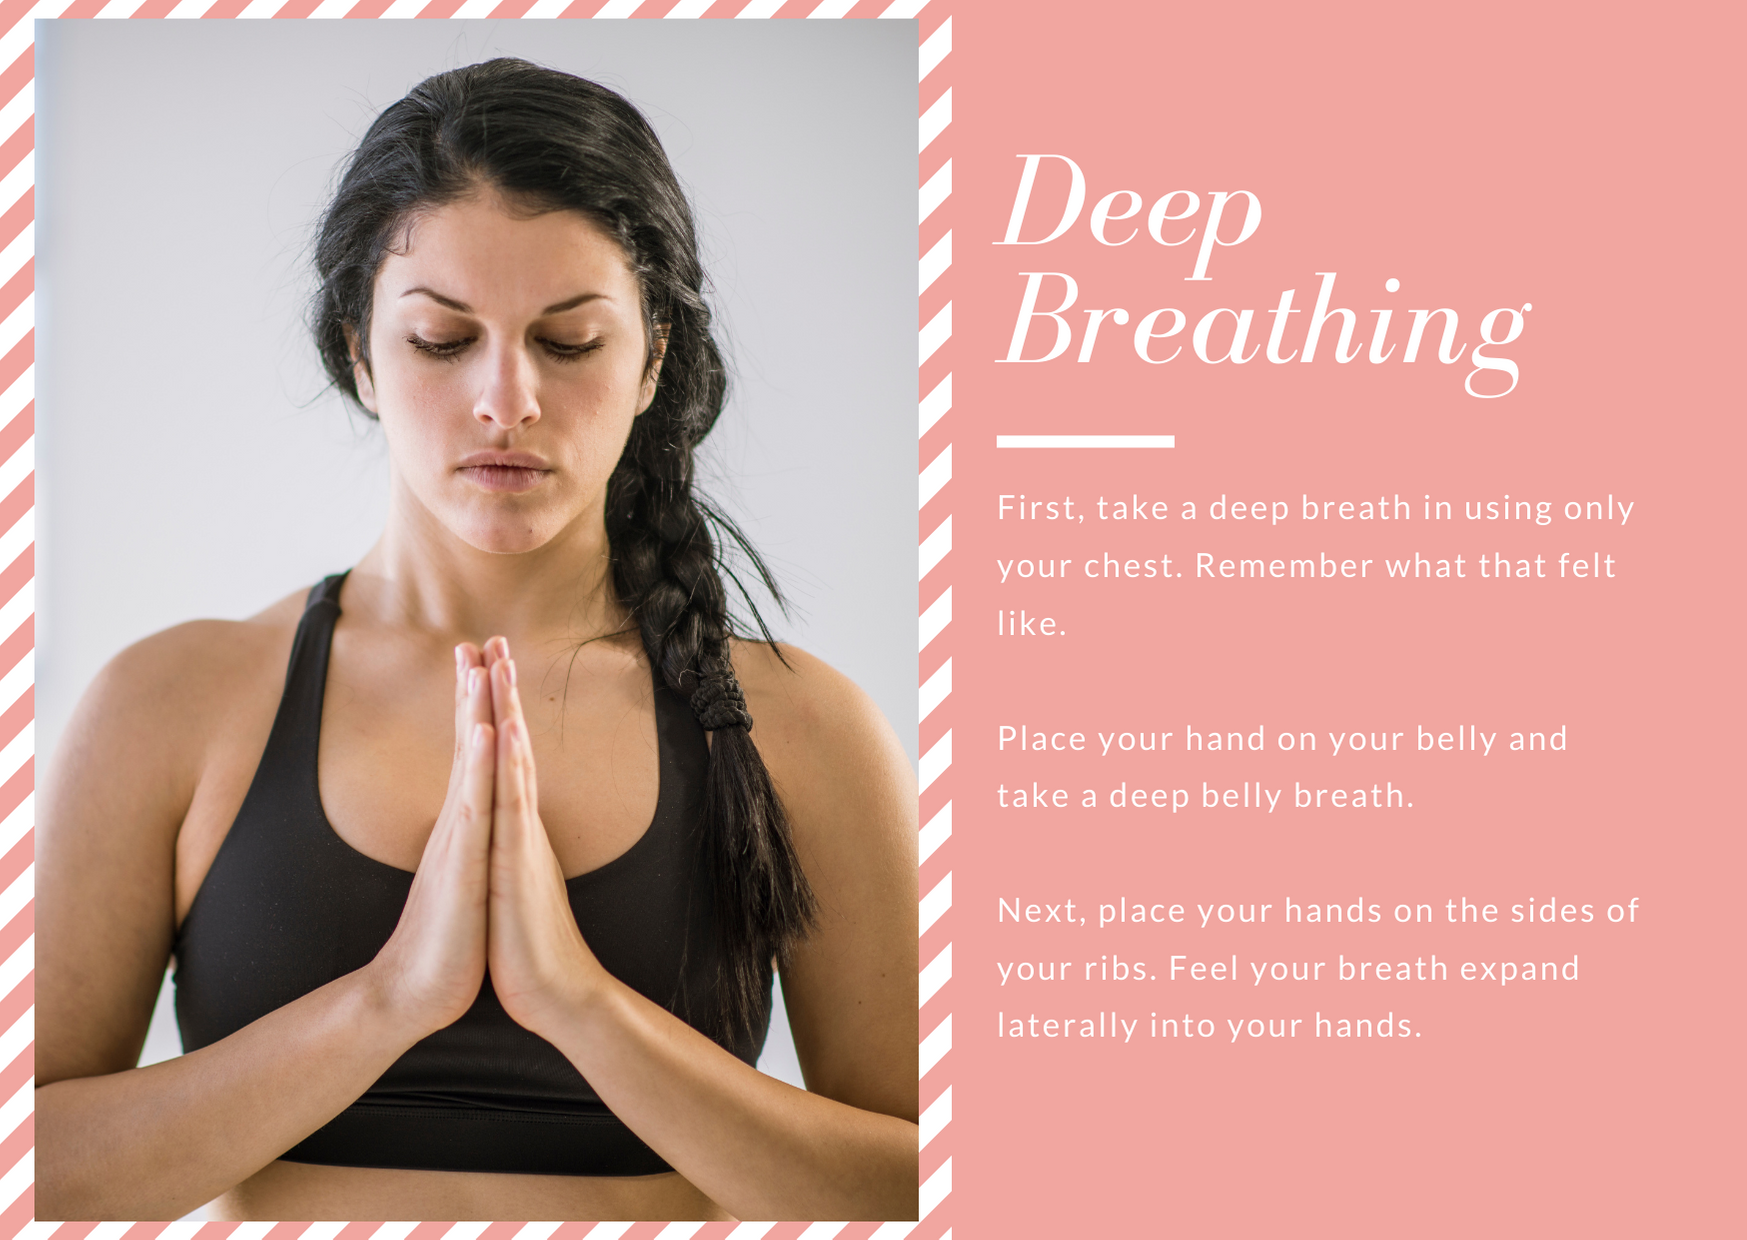 Practice Deep Breathing to interrupt poor breathing patterns and address pain